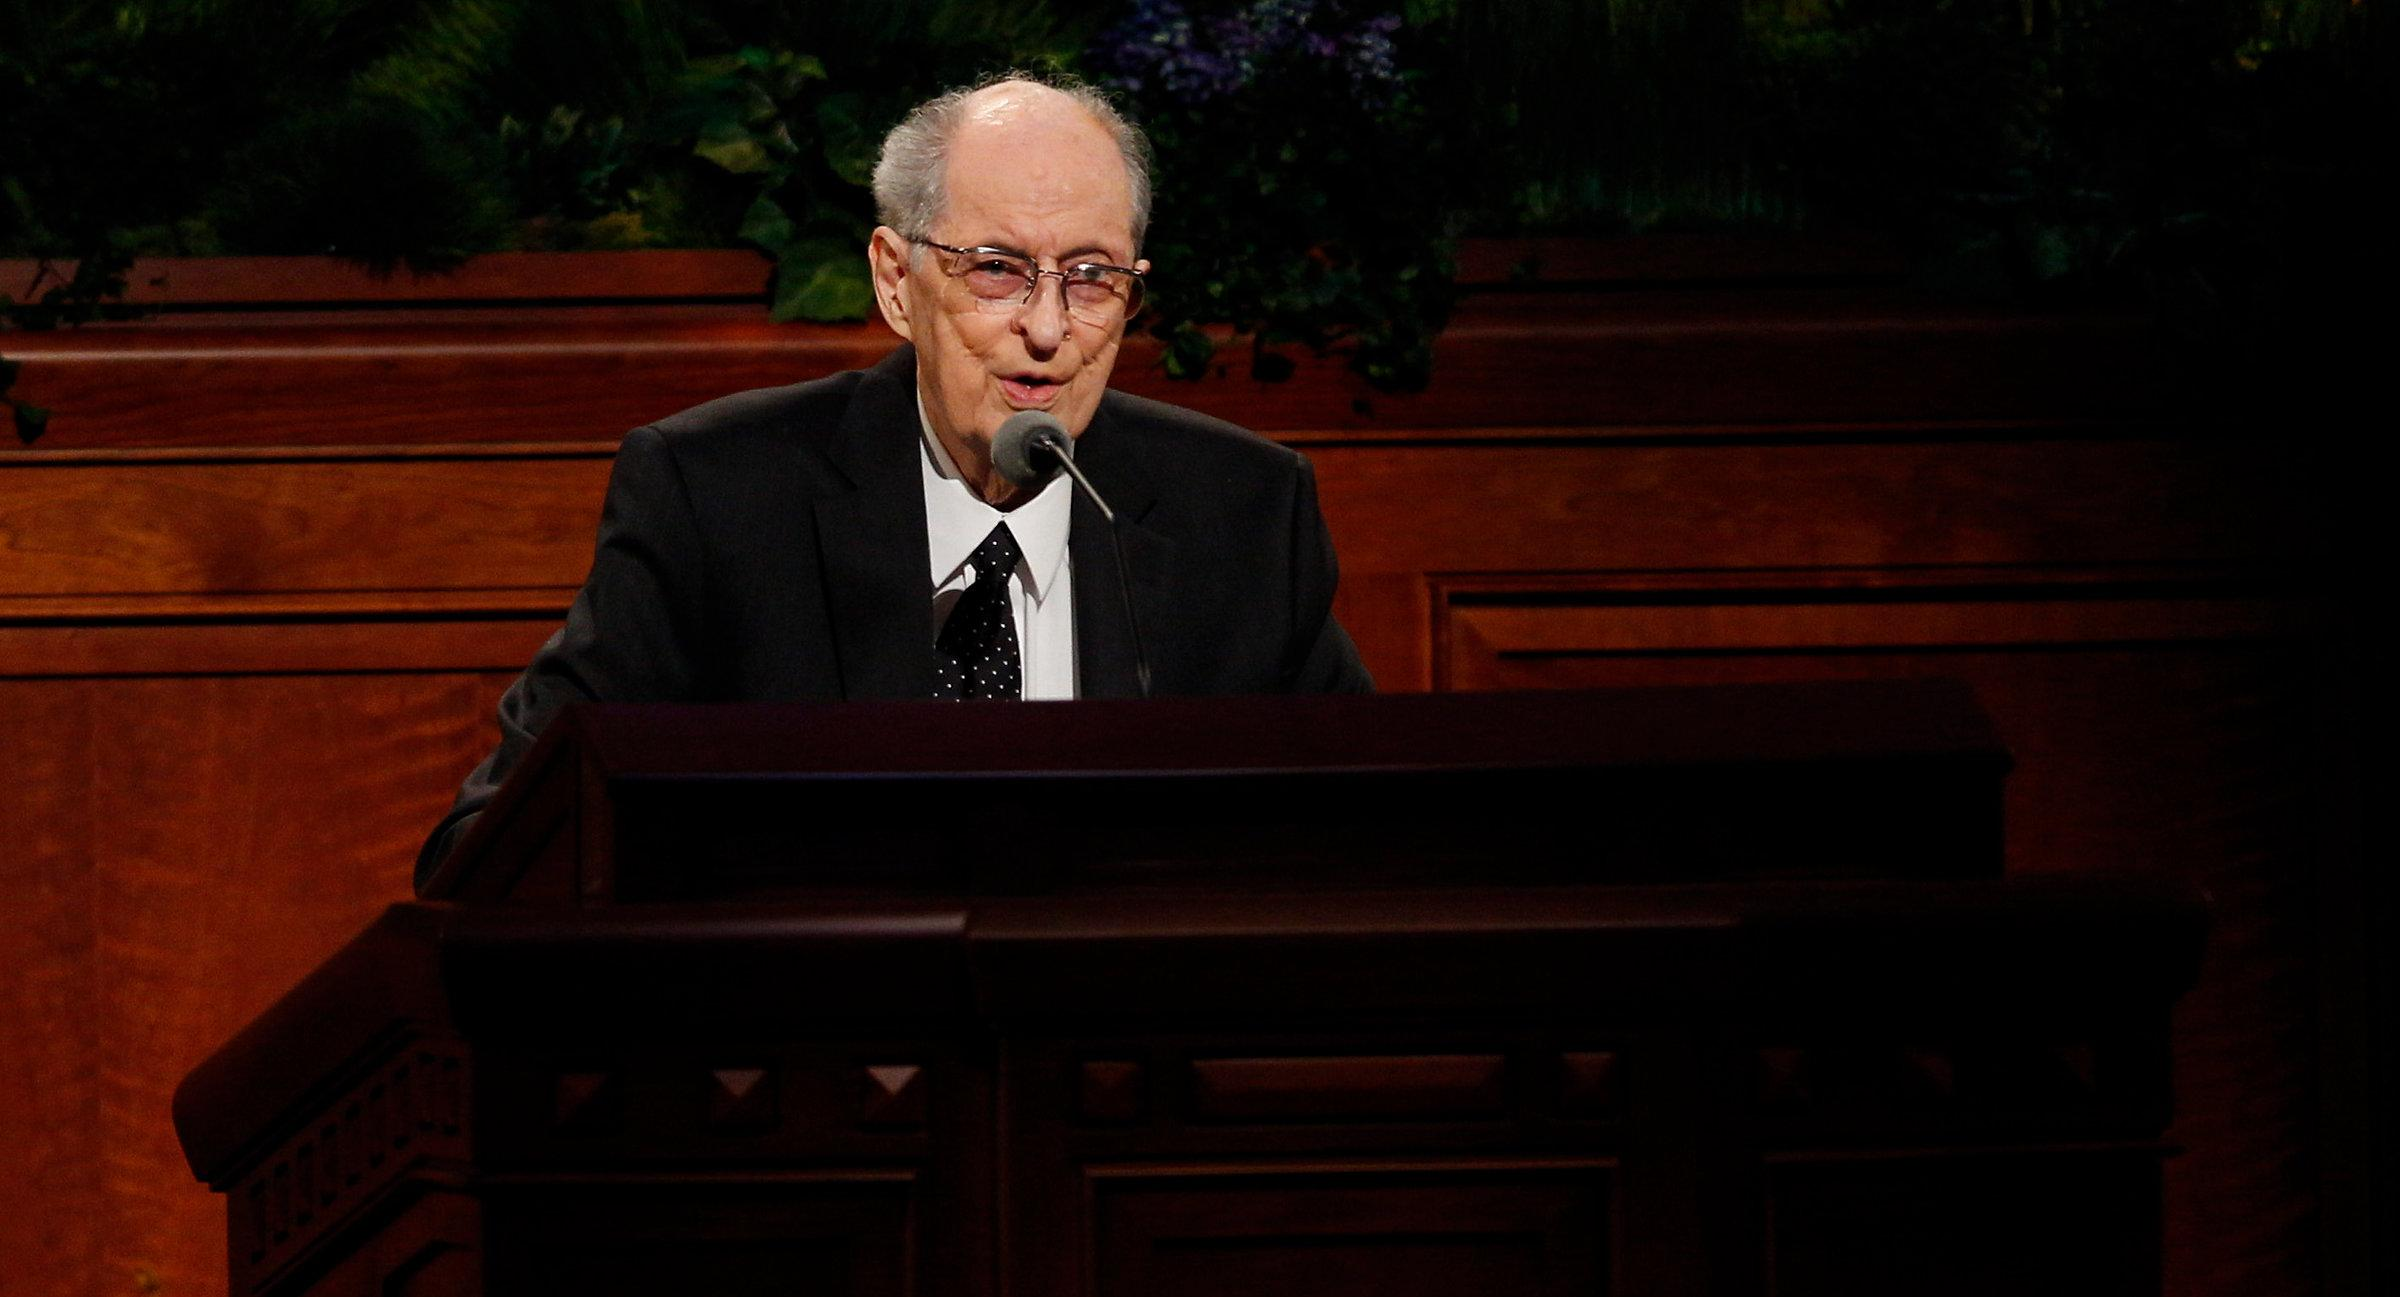 Elder Robert D. Hales speaking in 2015 (Photo: LDS church, Copyright Intellectual Reserve, Inc.)